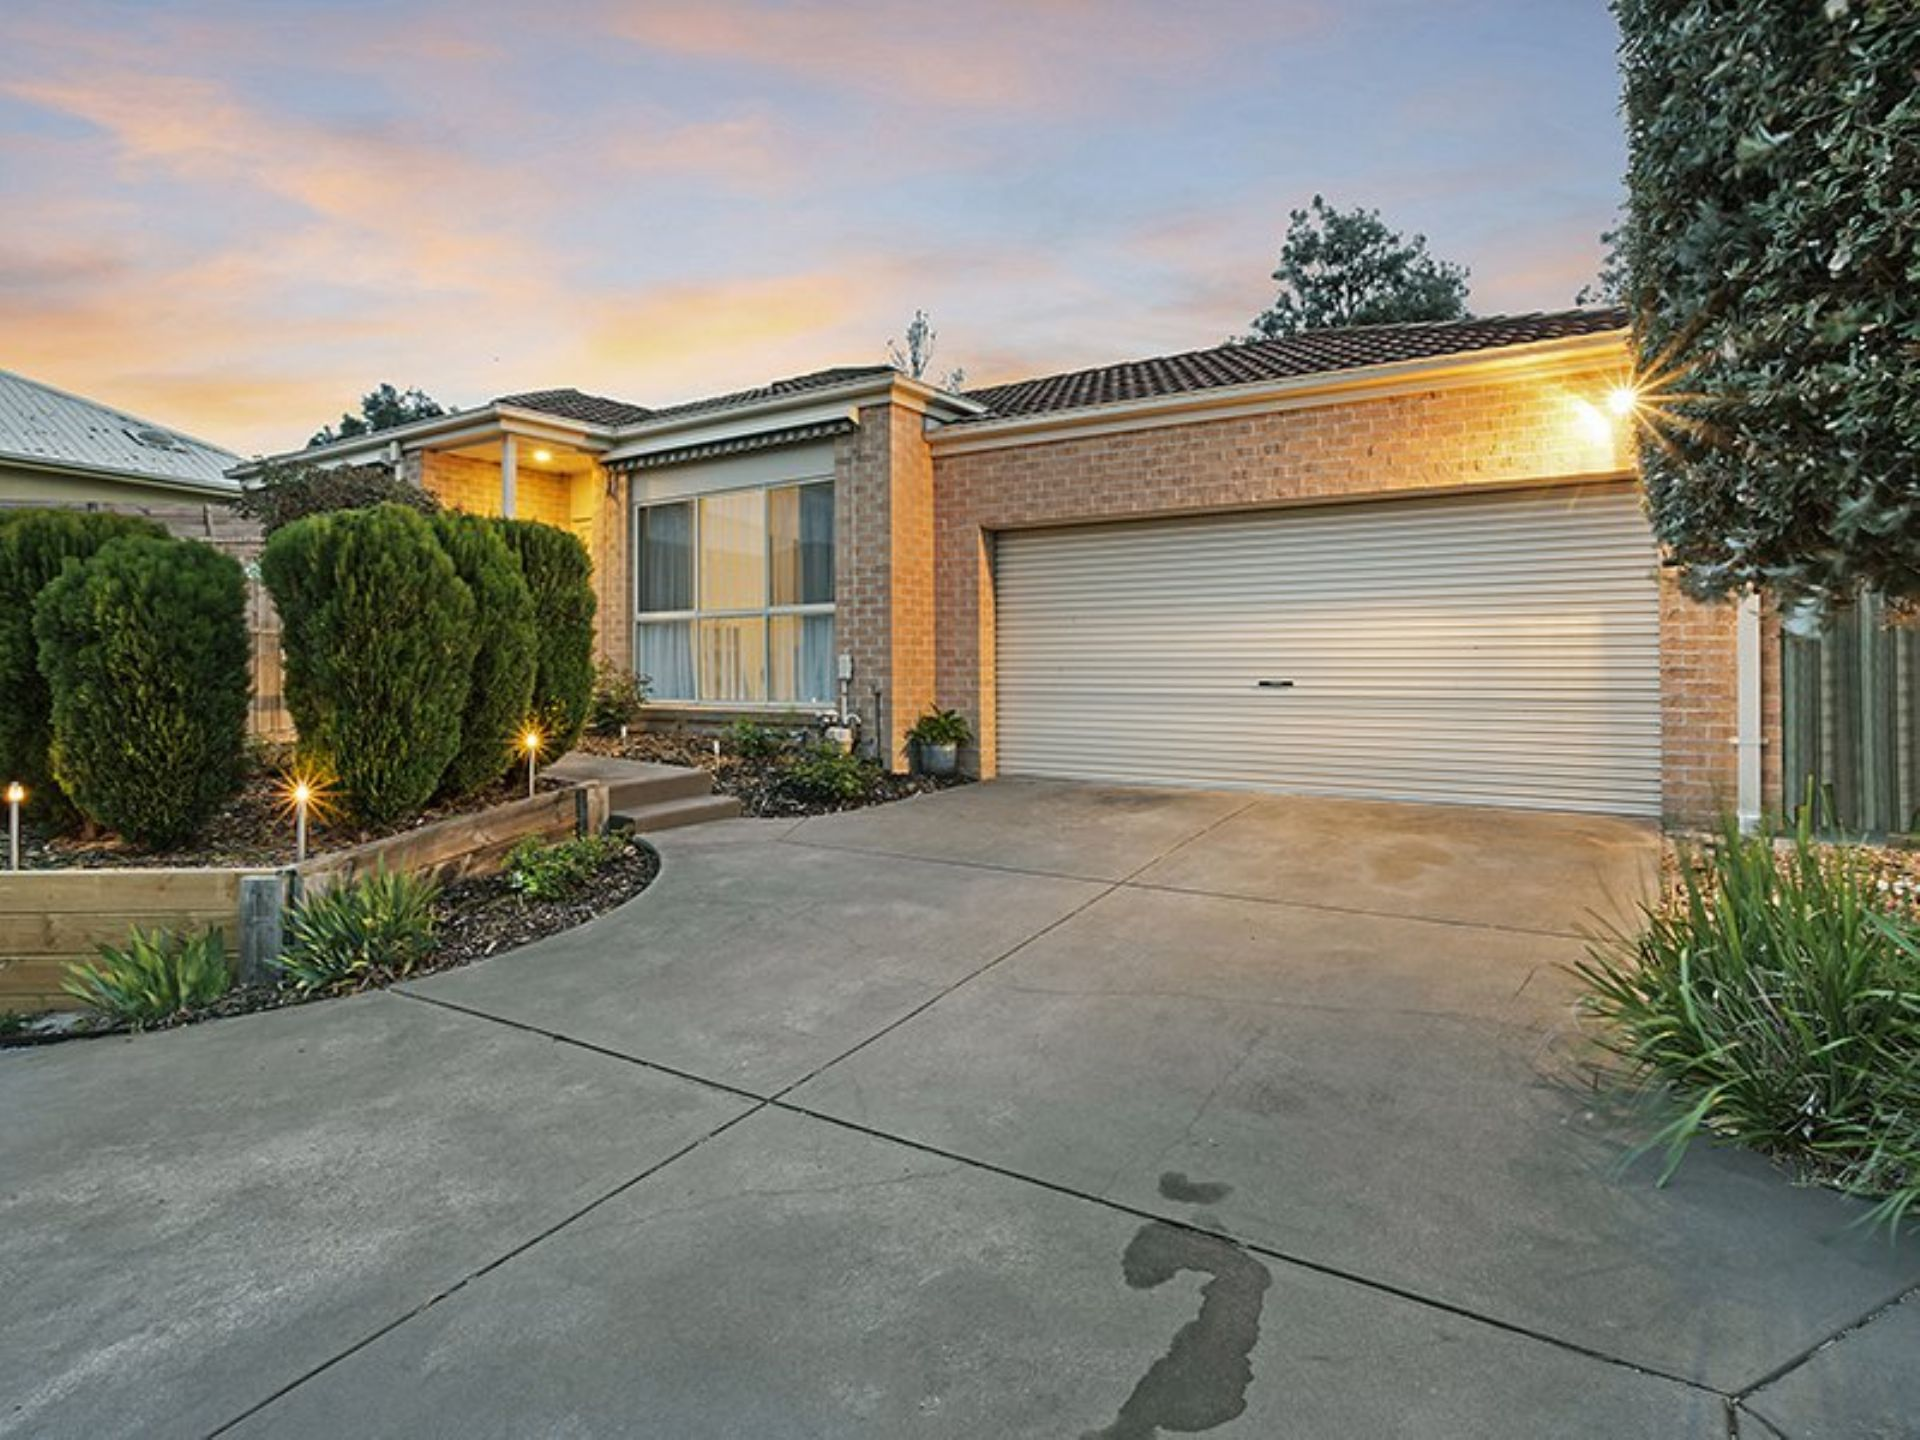 4/192 Beach Street, FRANKSTON, VIC, 3199 - Image